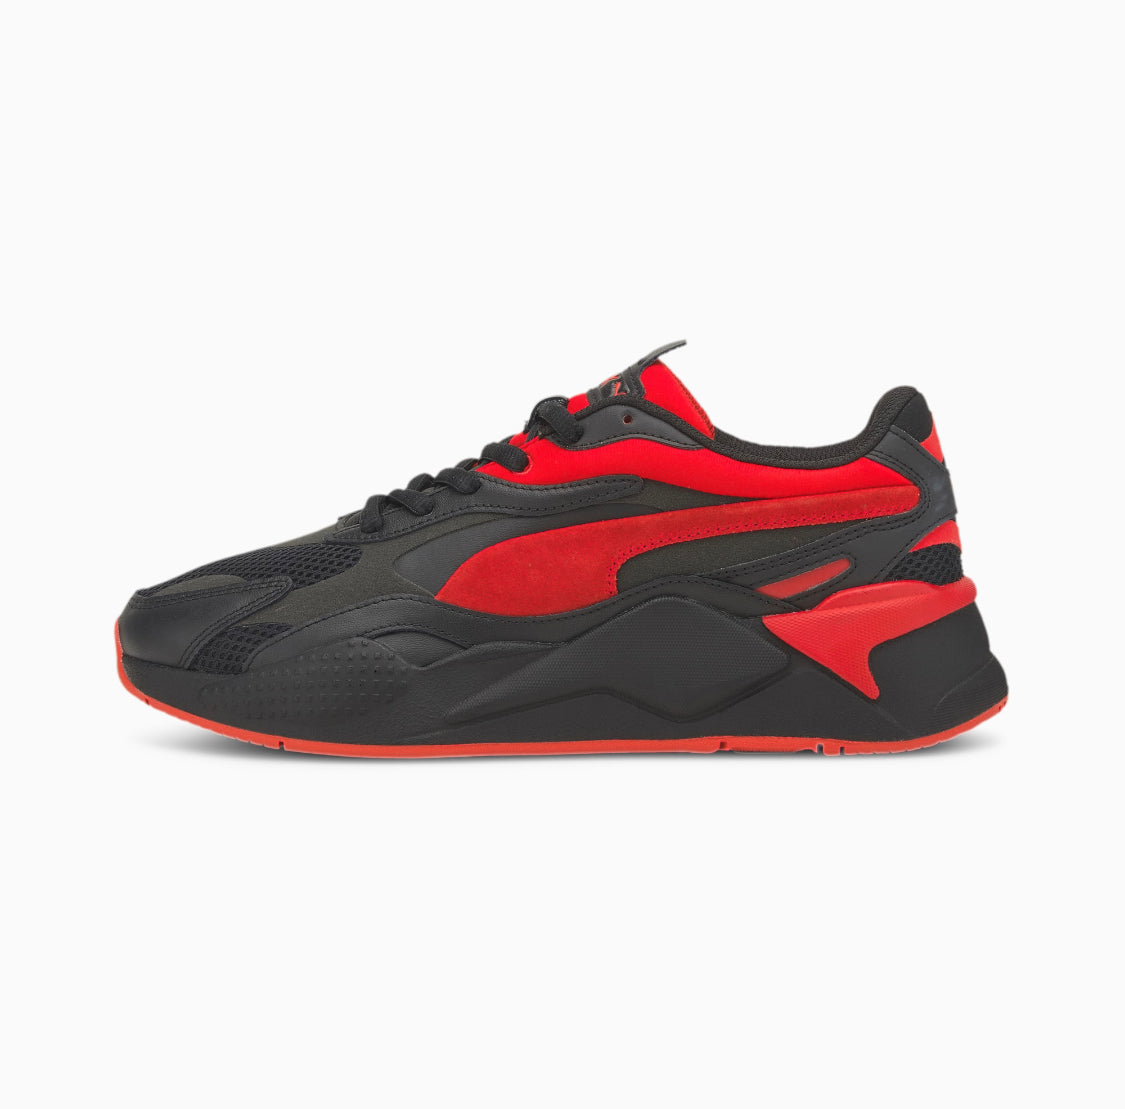 Puma RS-X3 - Balck / Red